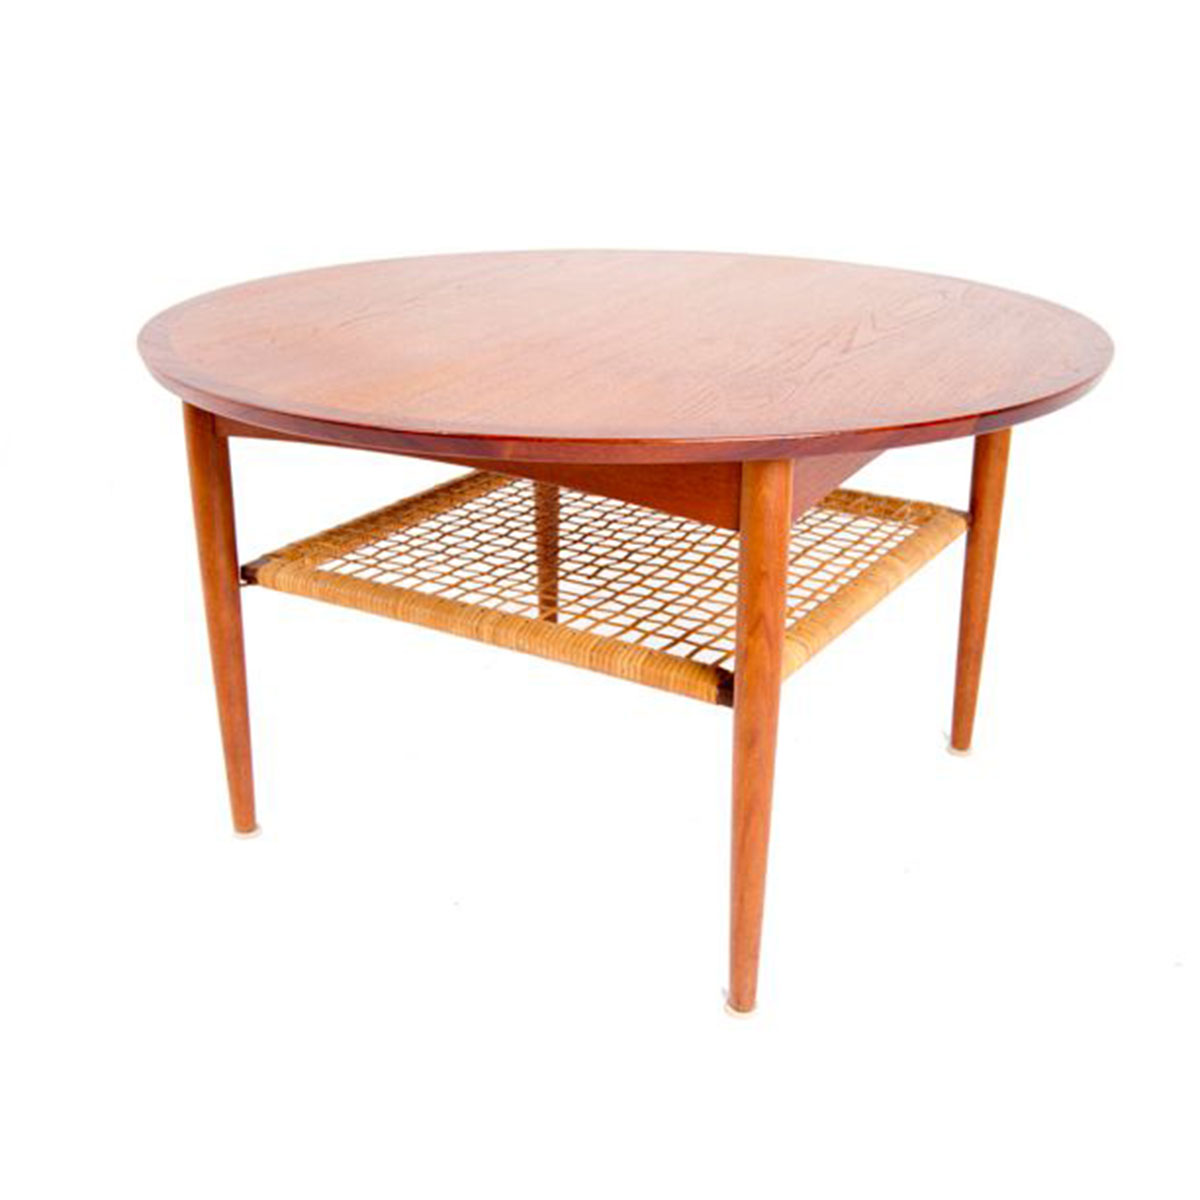 Round Danish Modern Teak and Cane Coffee Table